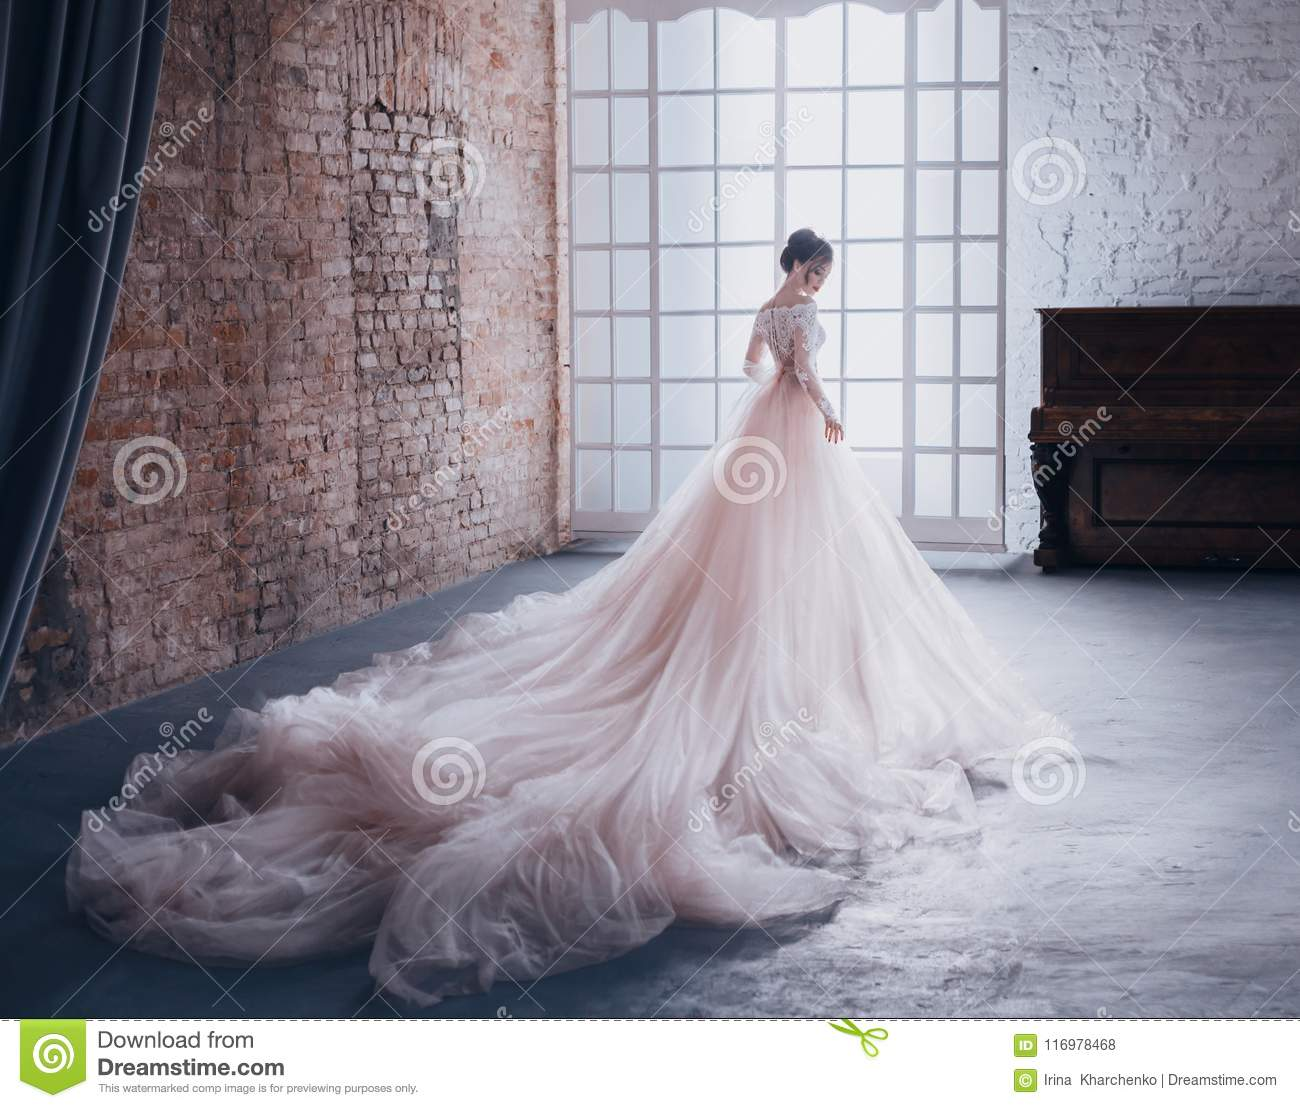 A young princess in an expensive, luxurious dress with a long train stands with her back to the camera, against the